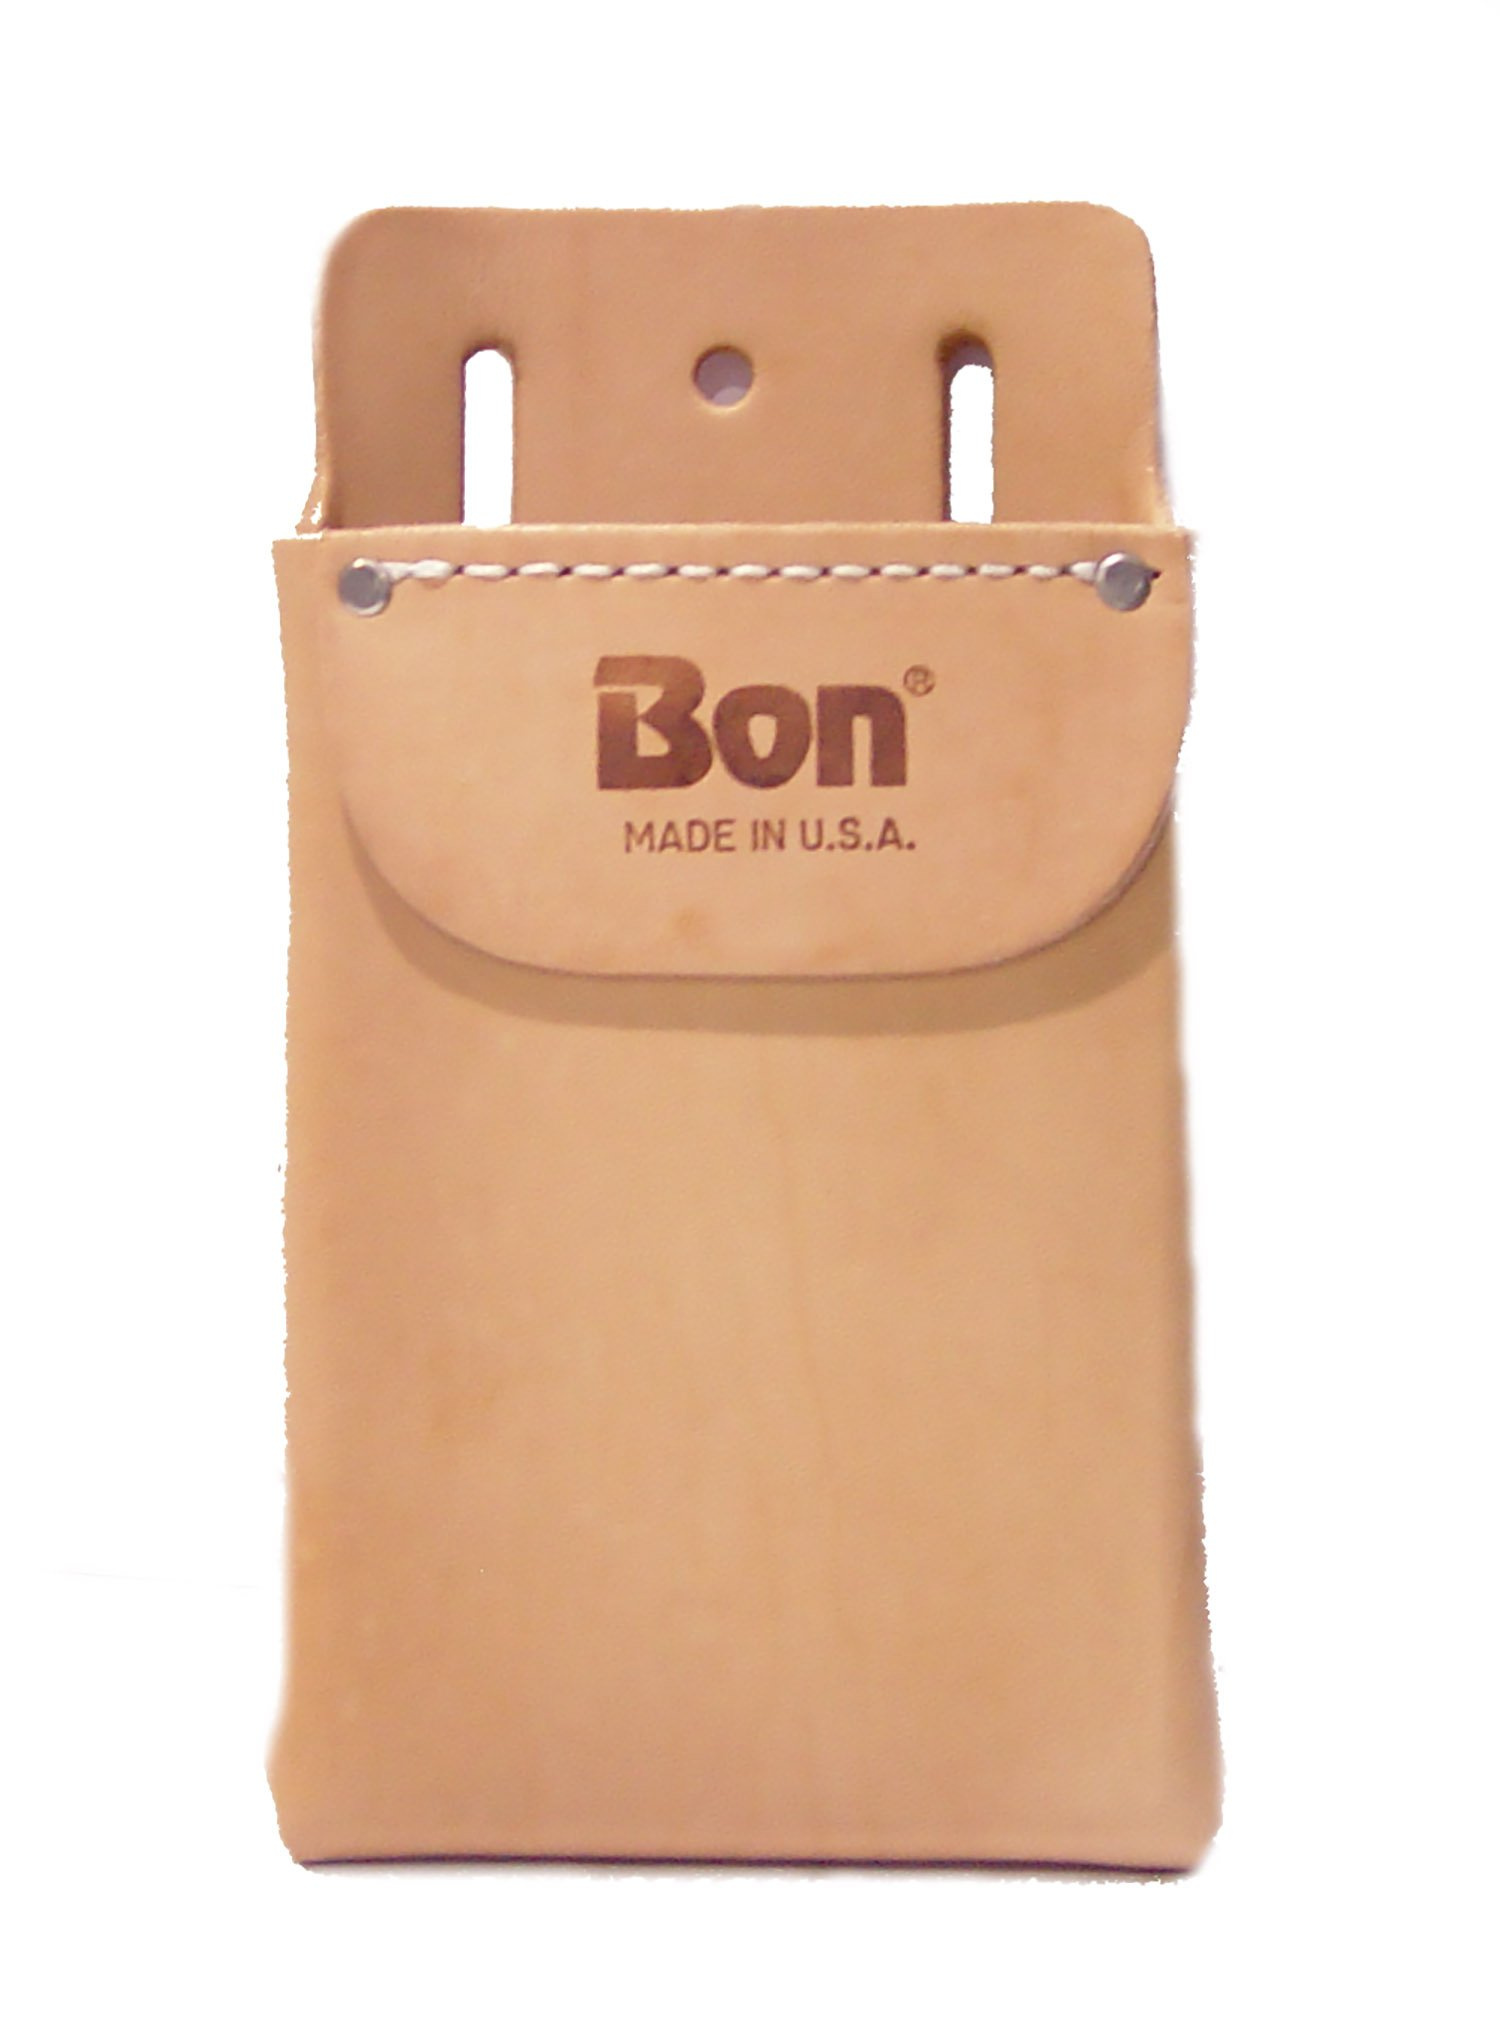 Bon by Heritage Leather 408X Single Pocket Box Shaped Fiber-Lined Tool Pouch with Flap by Heritage Leather (Image #1)